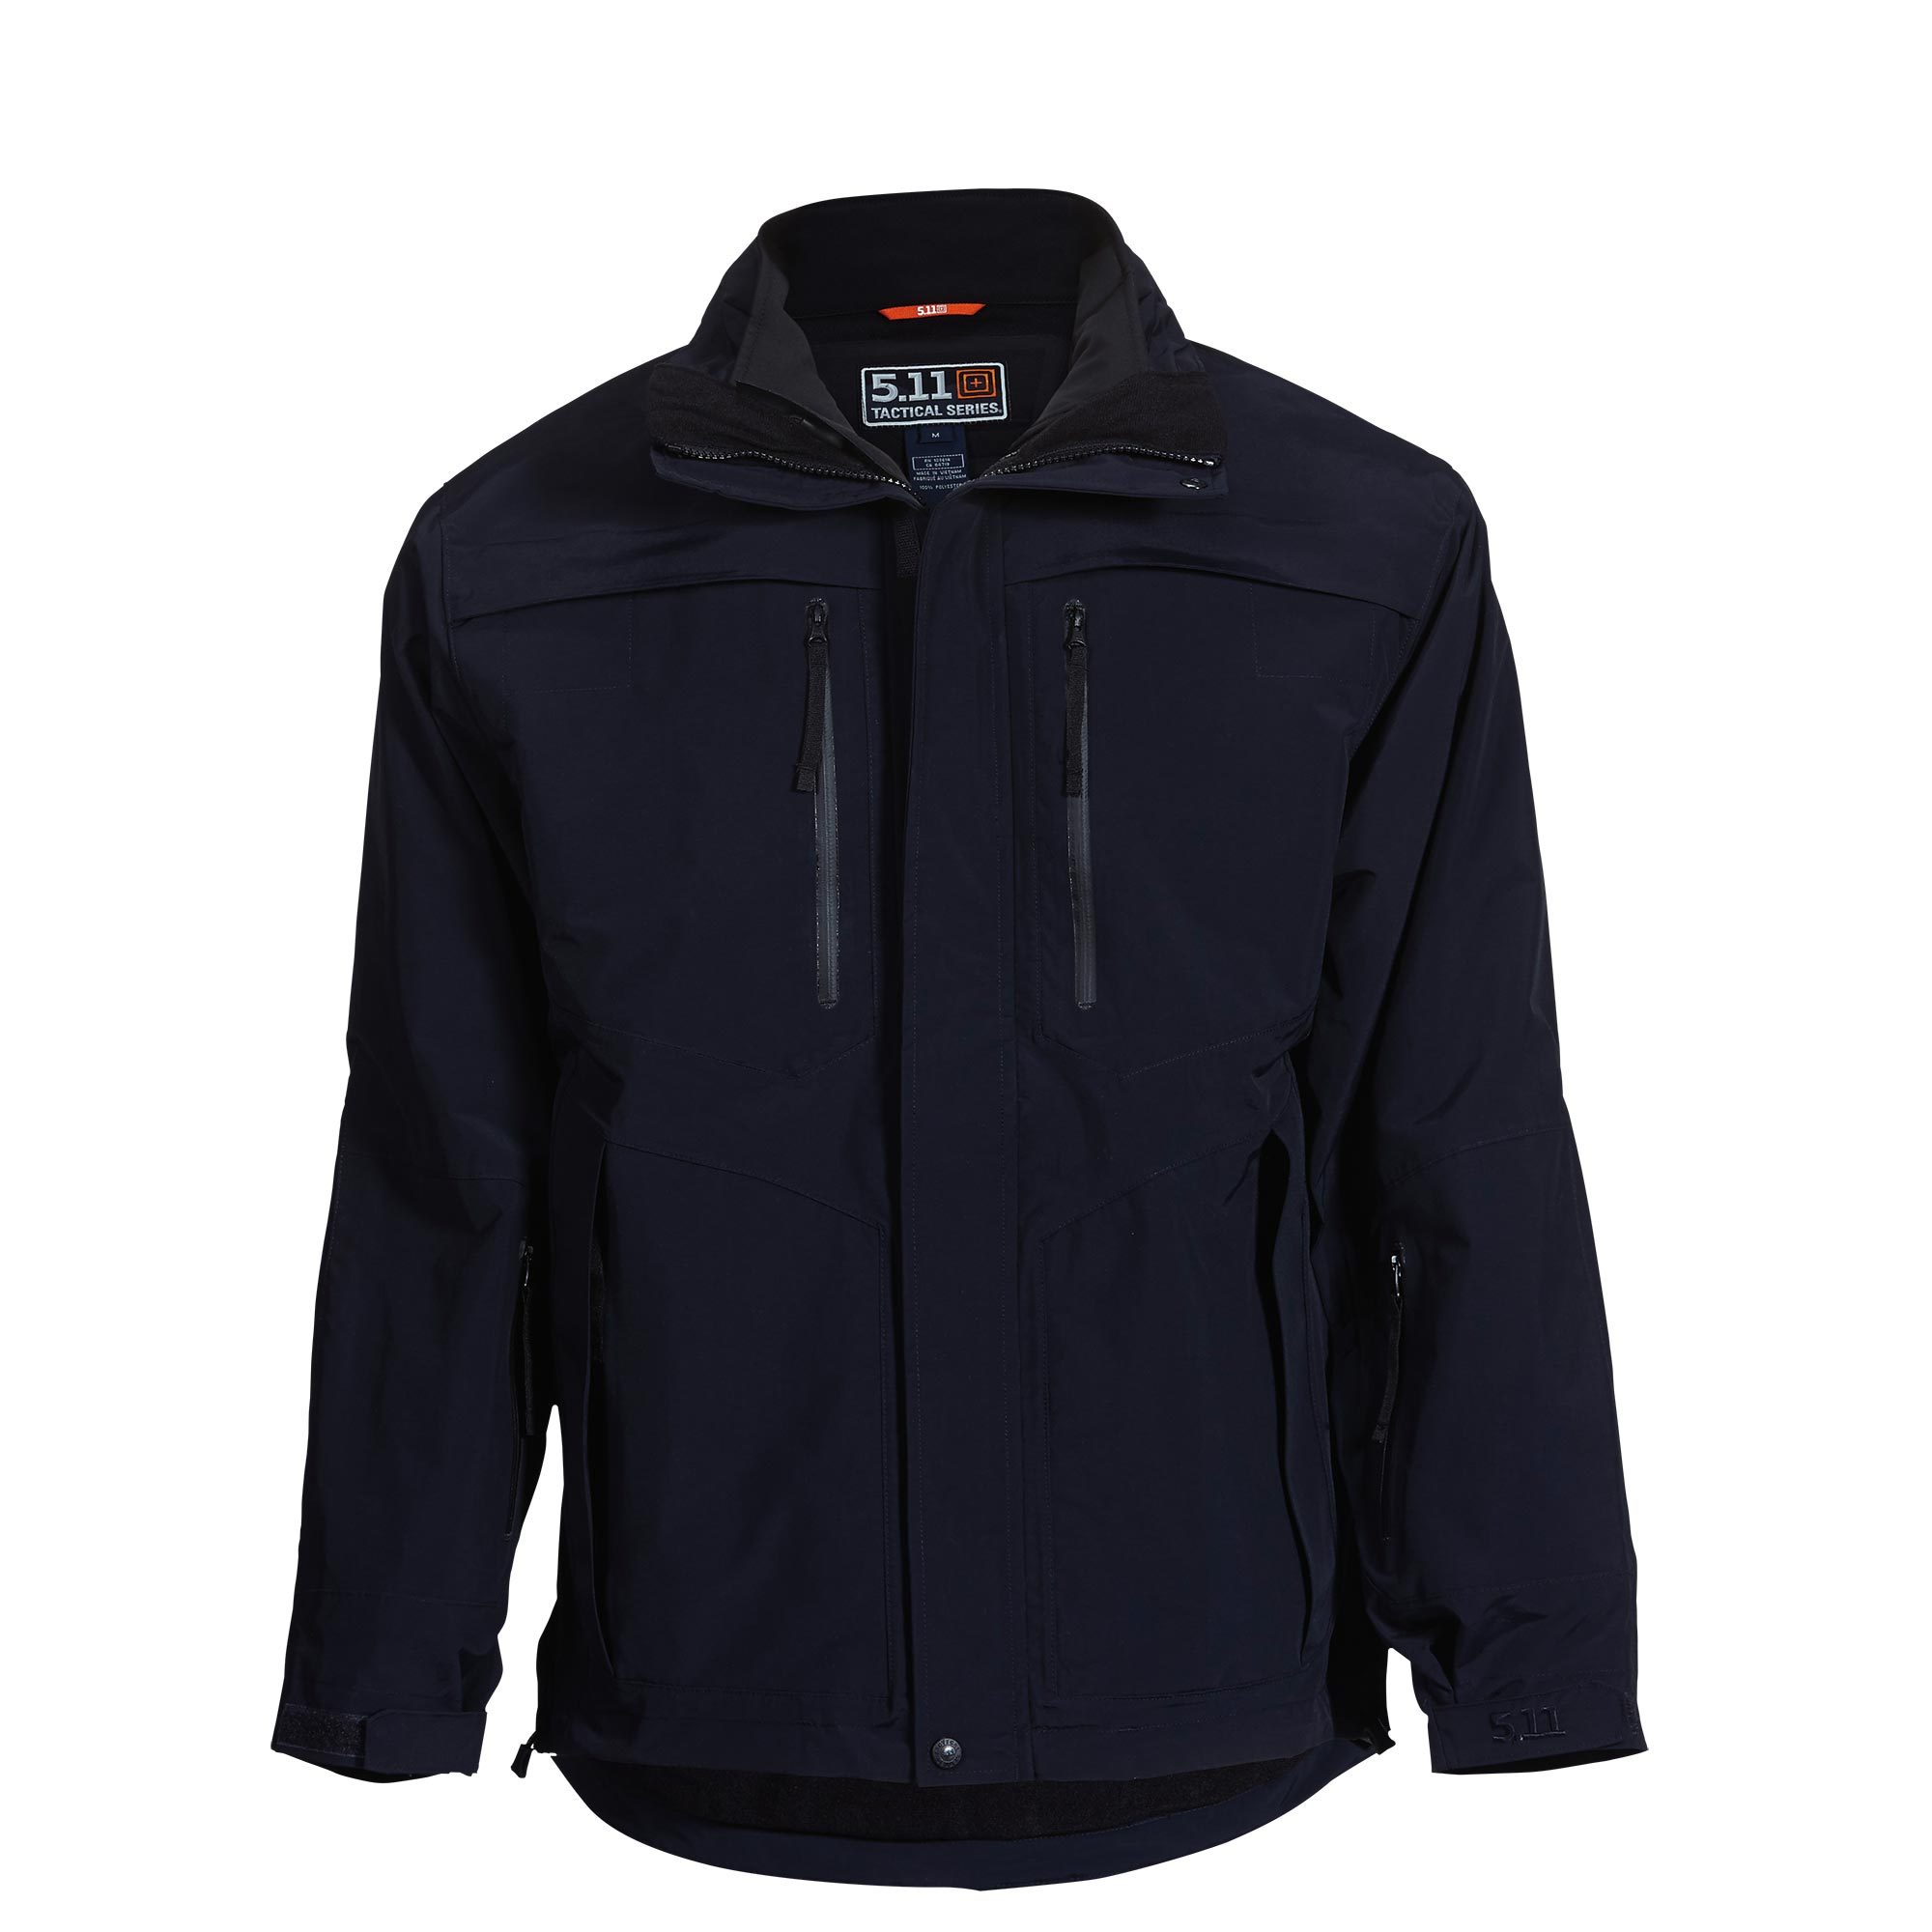 5.11 Tactical Men's Bristol Parka Jacket (Blue) thumbnail